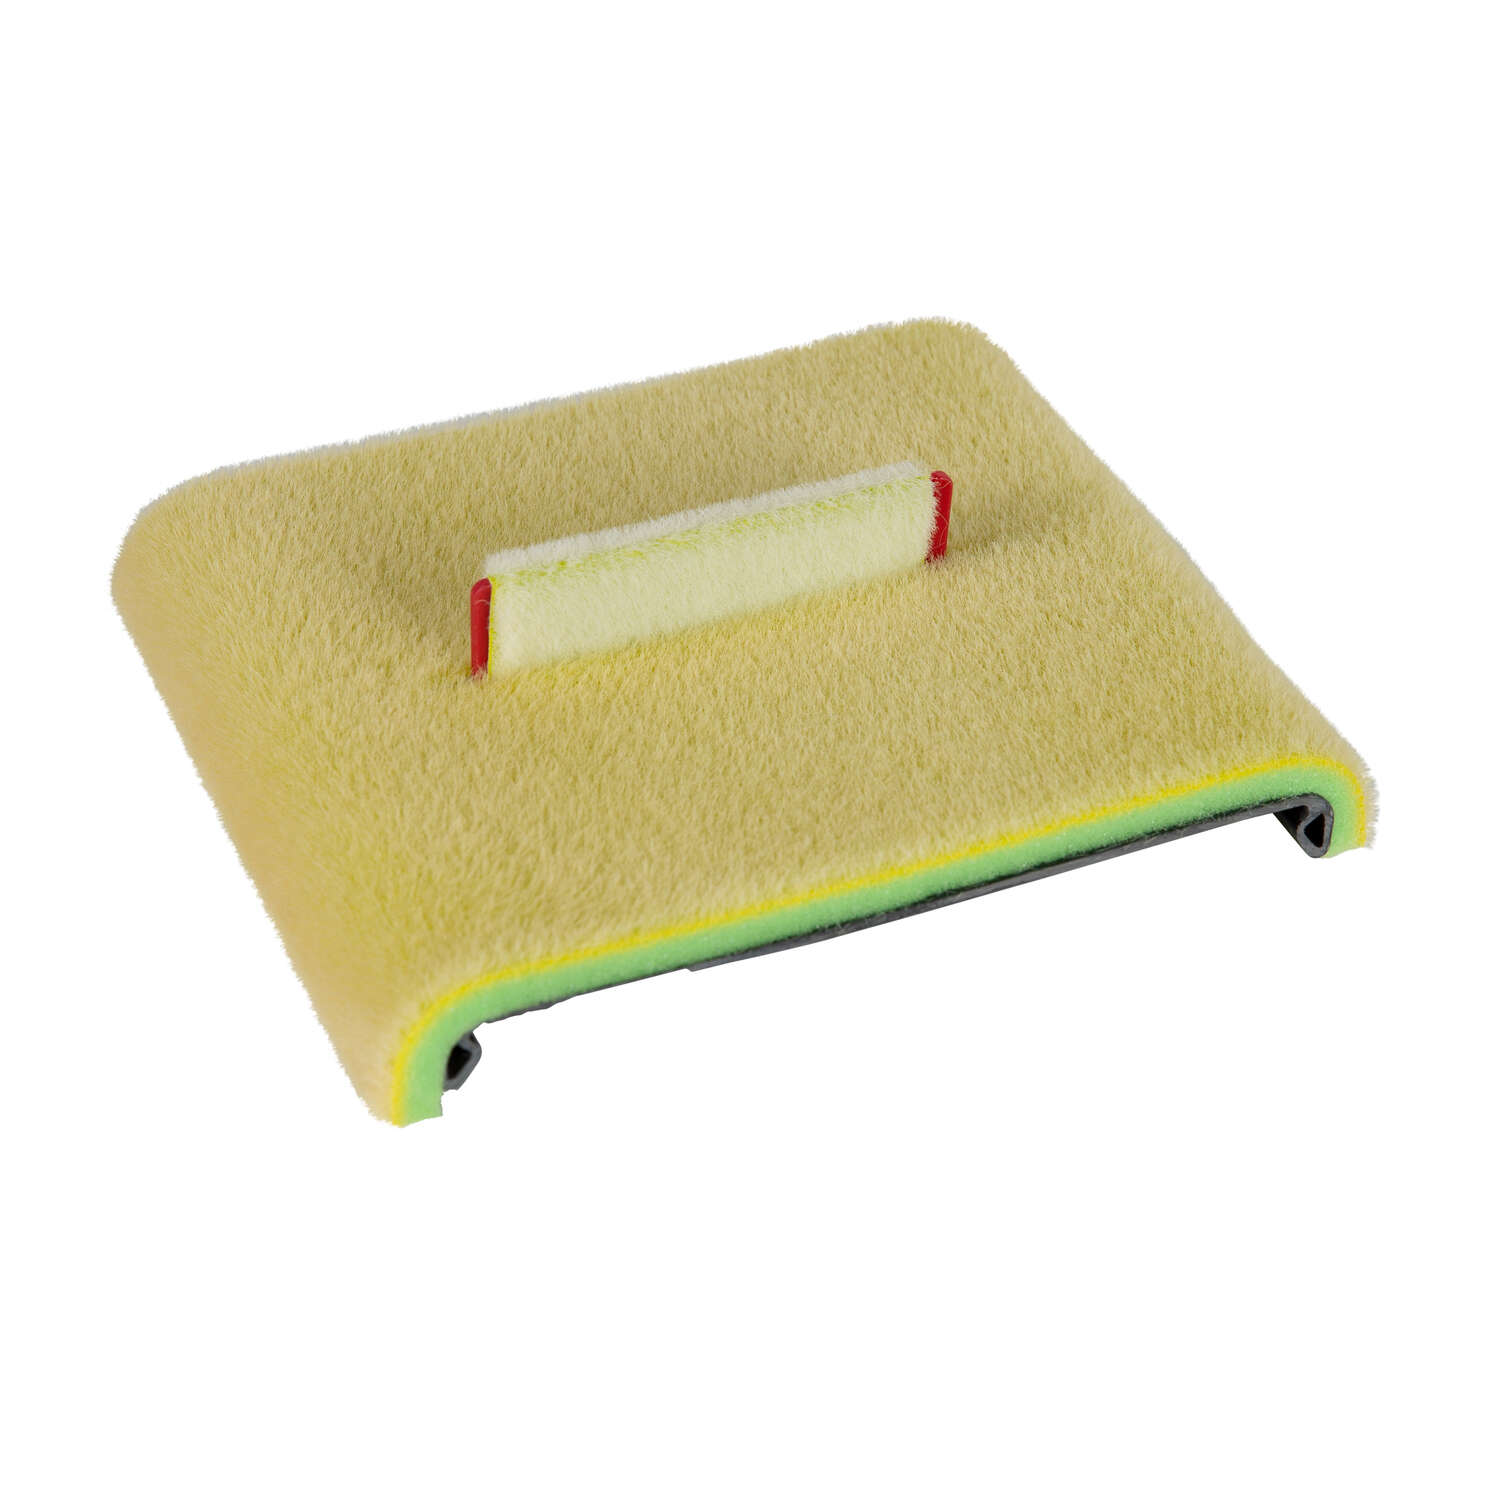 Shur-Line  Refill Staining Pad  For Flat Surfaces